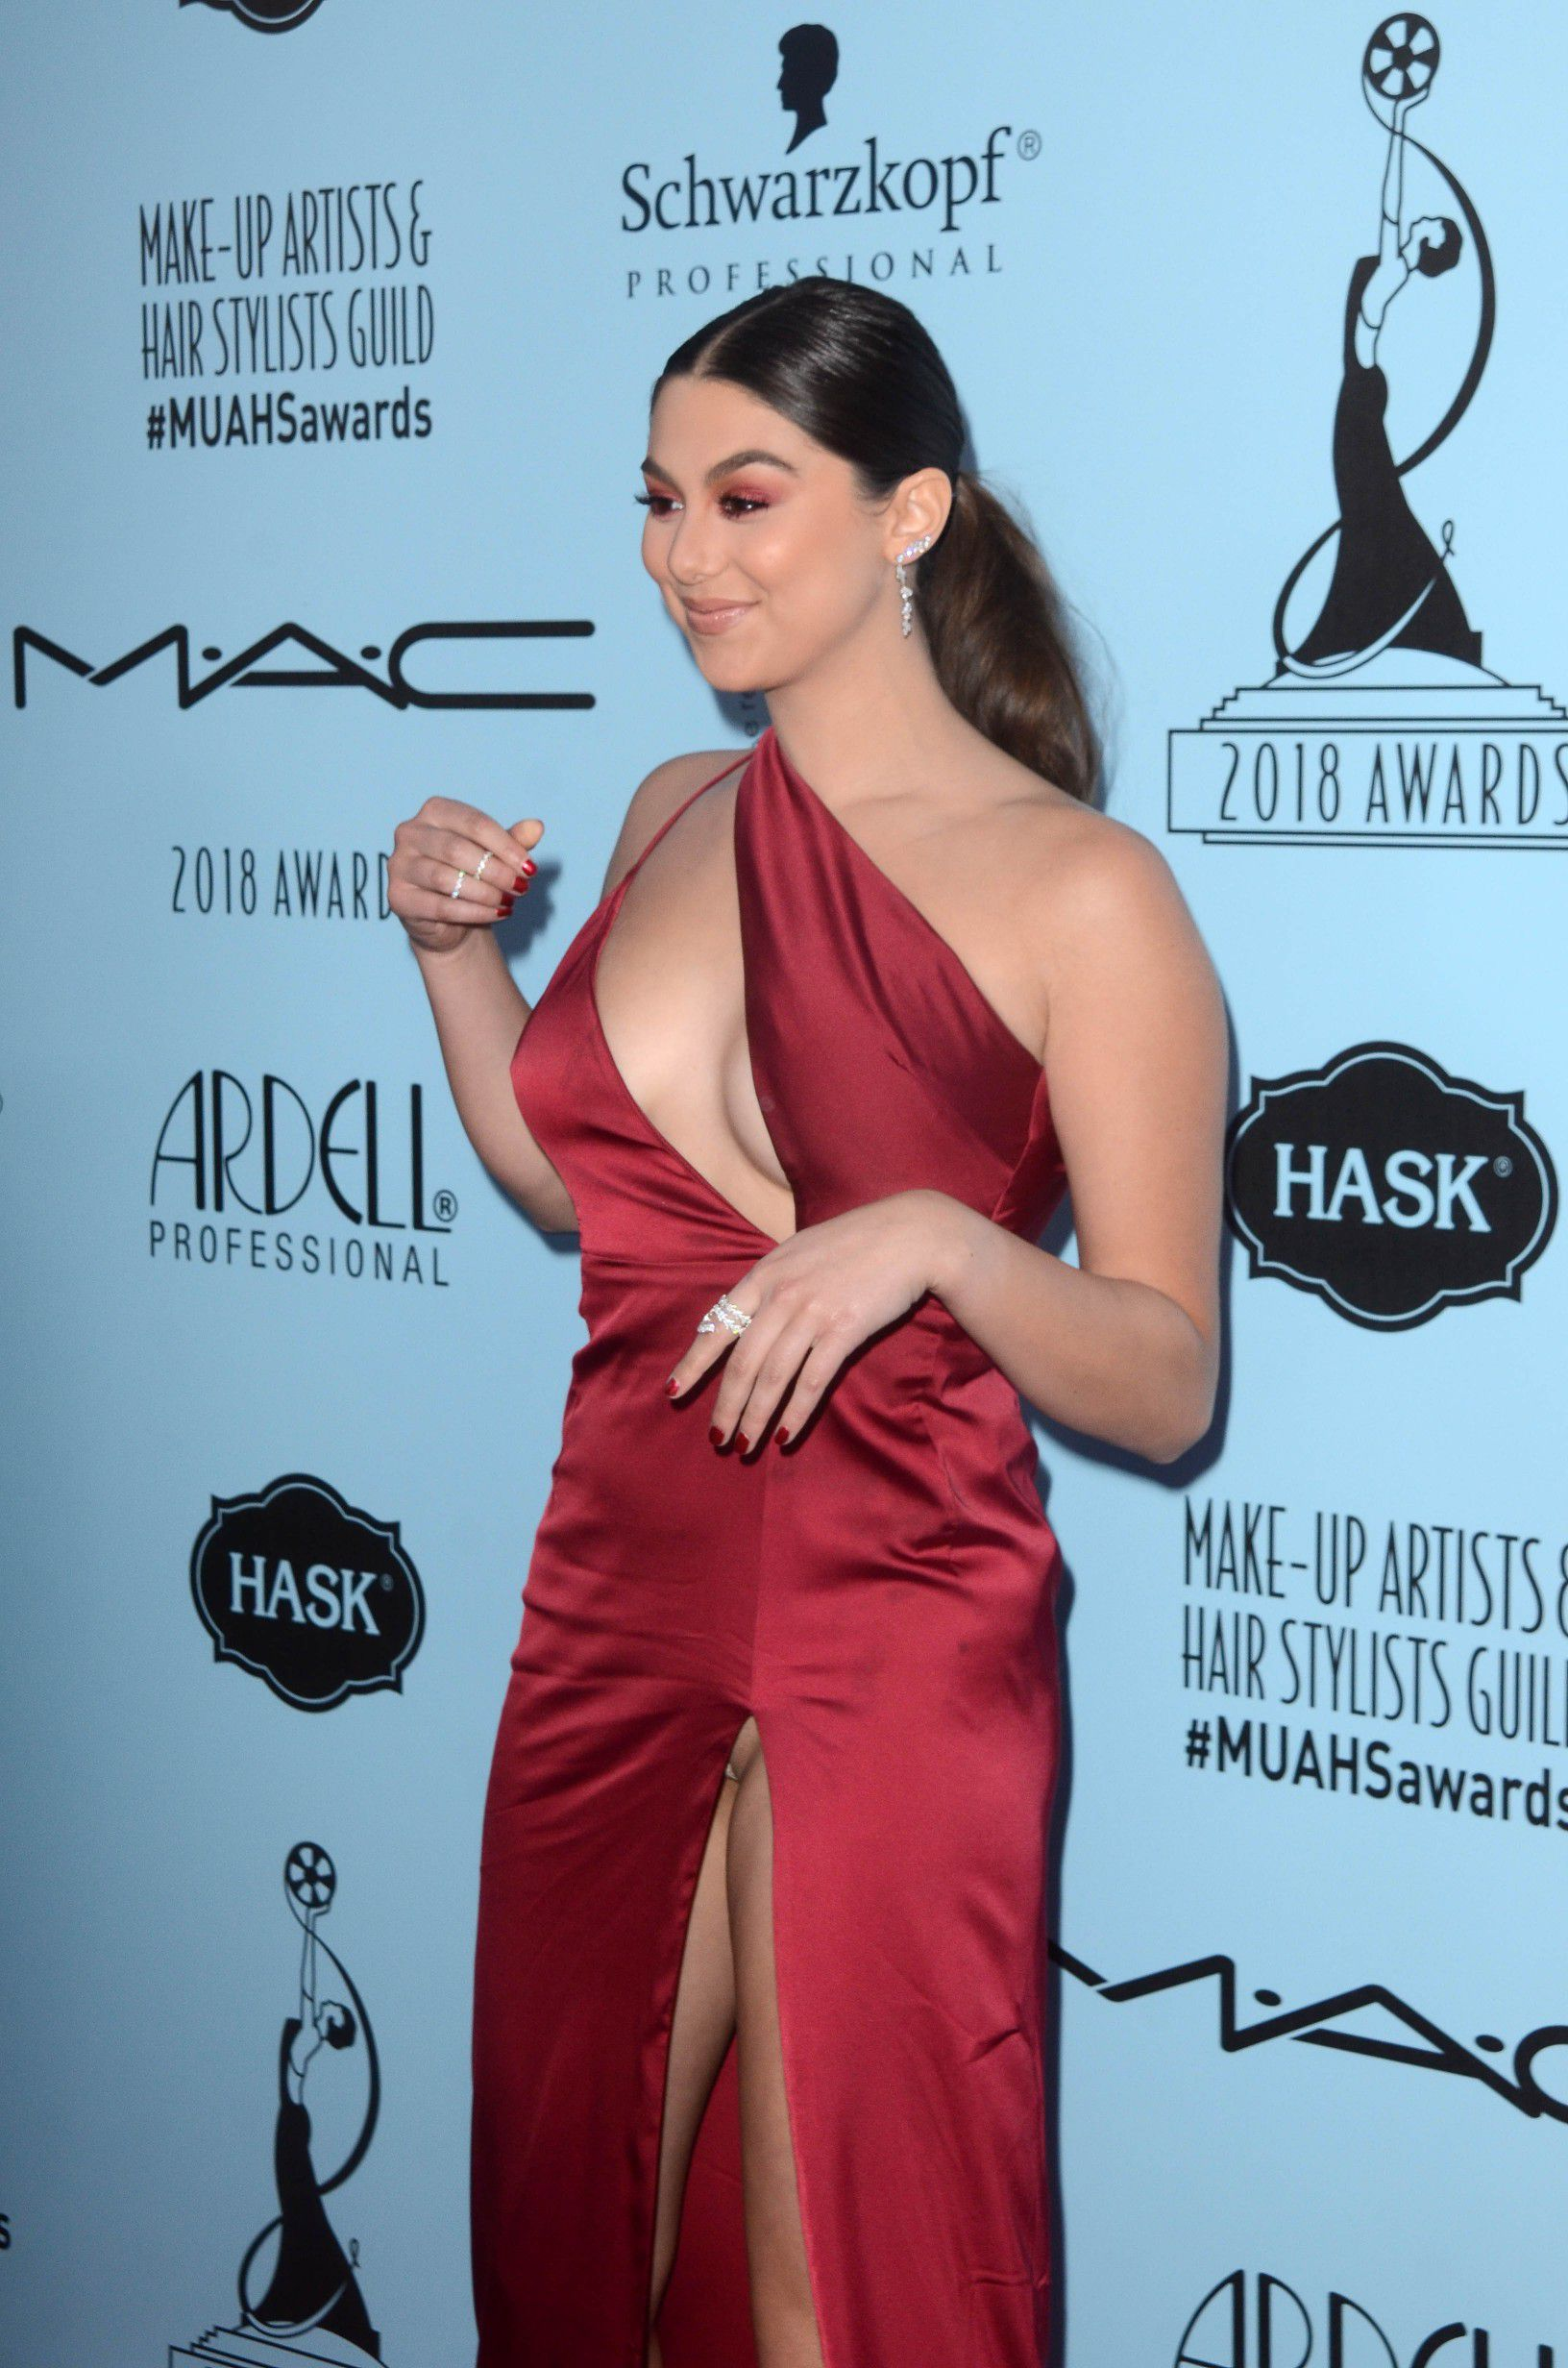 kira-kosarin-panty-upskirt-at-2018-make-up-artists-and-hair-stylists-guild-awards-in-la-3686